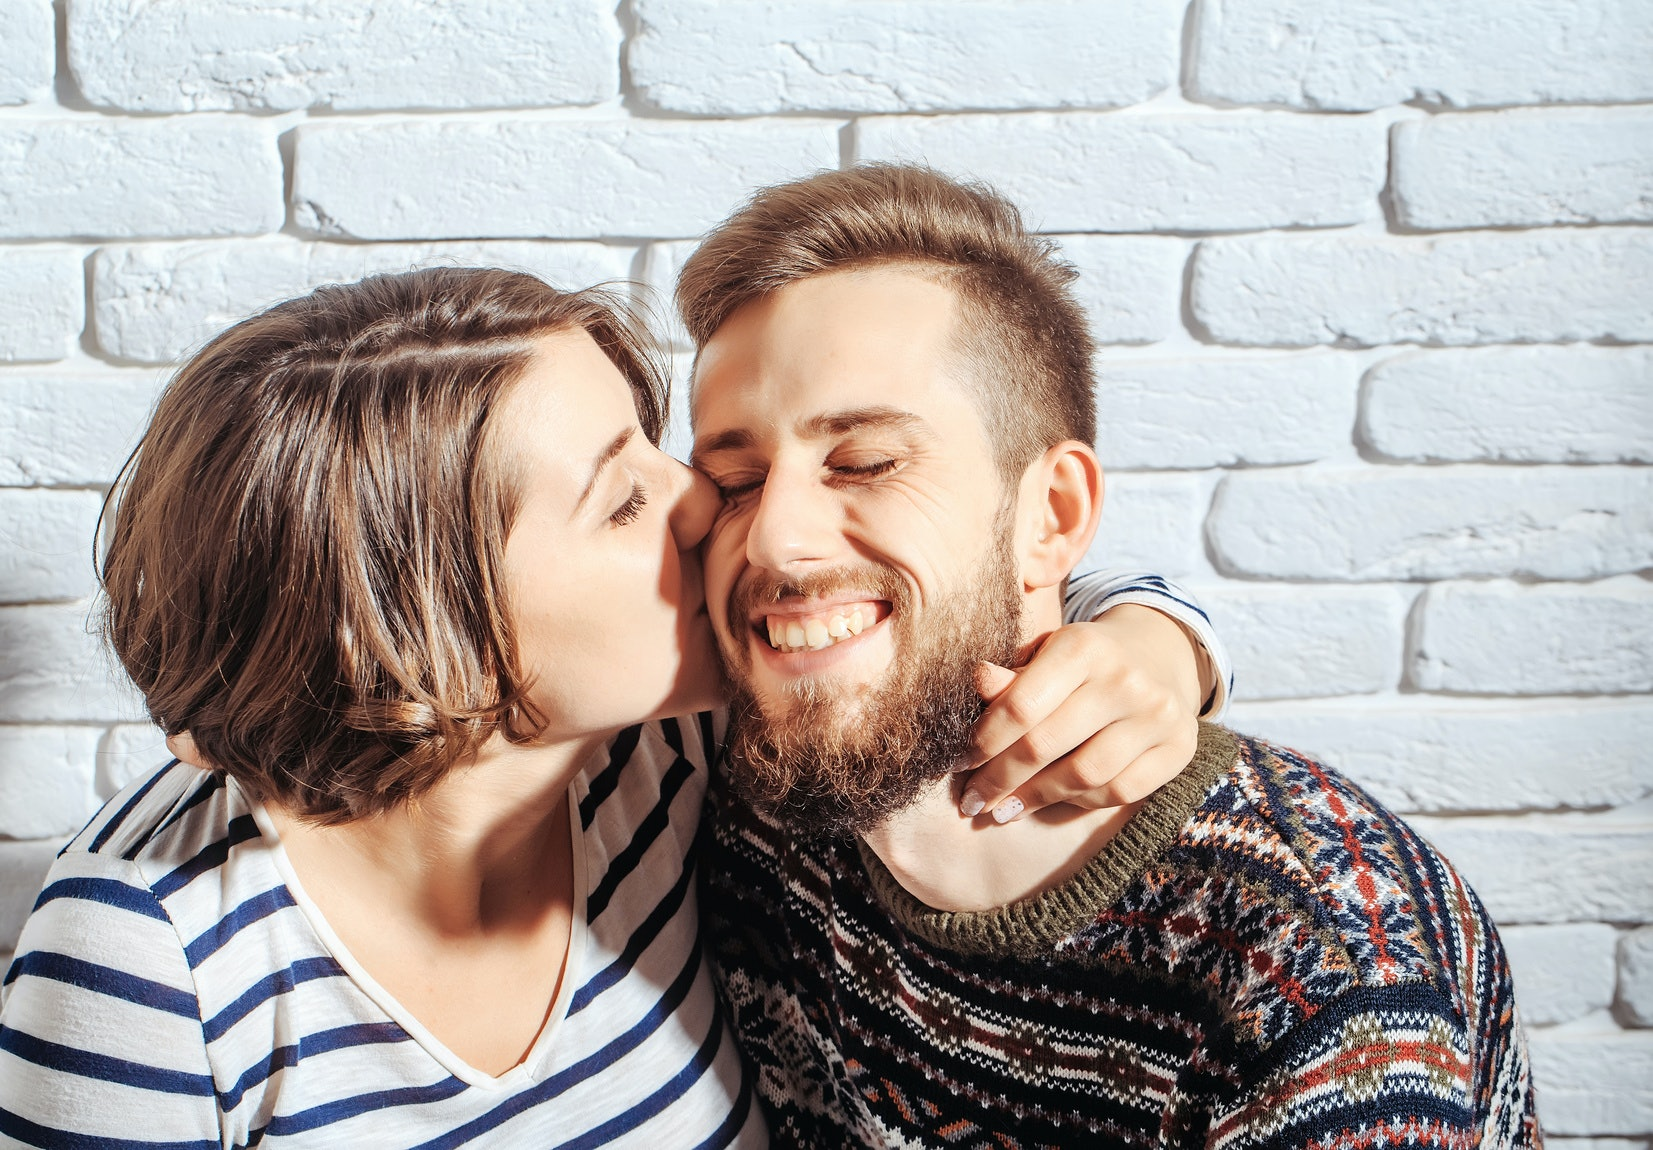 Foreigners dating in india